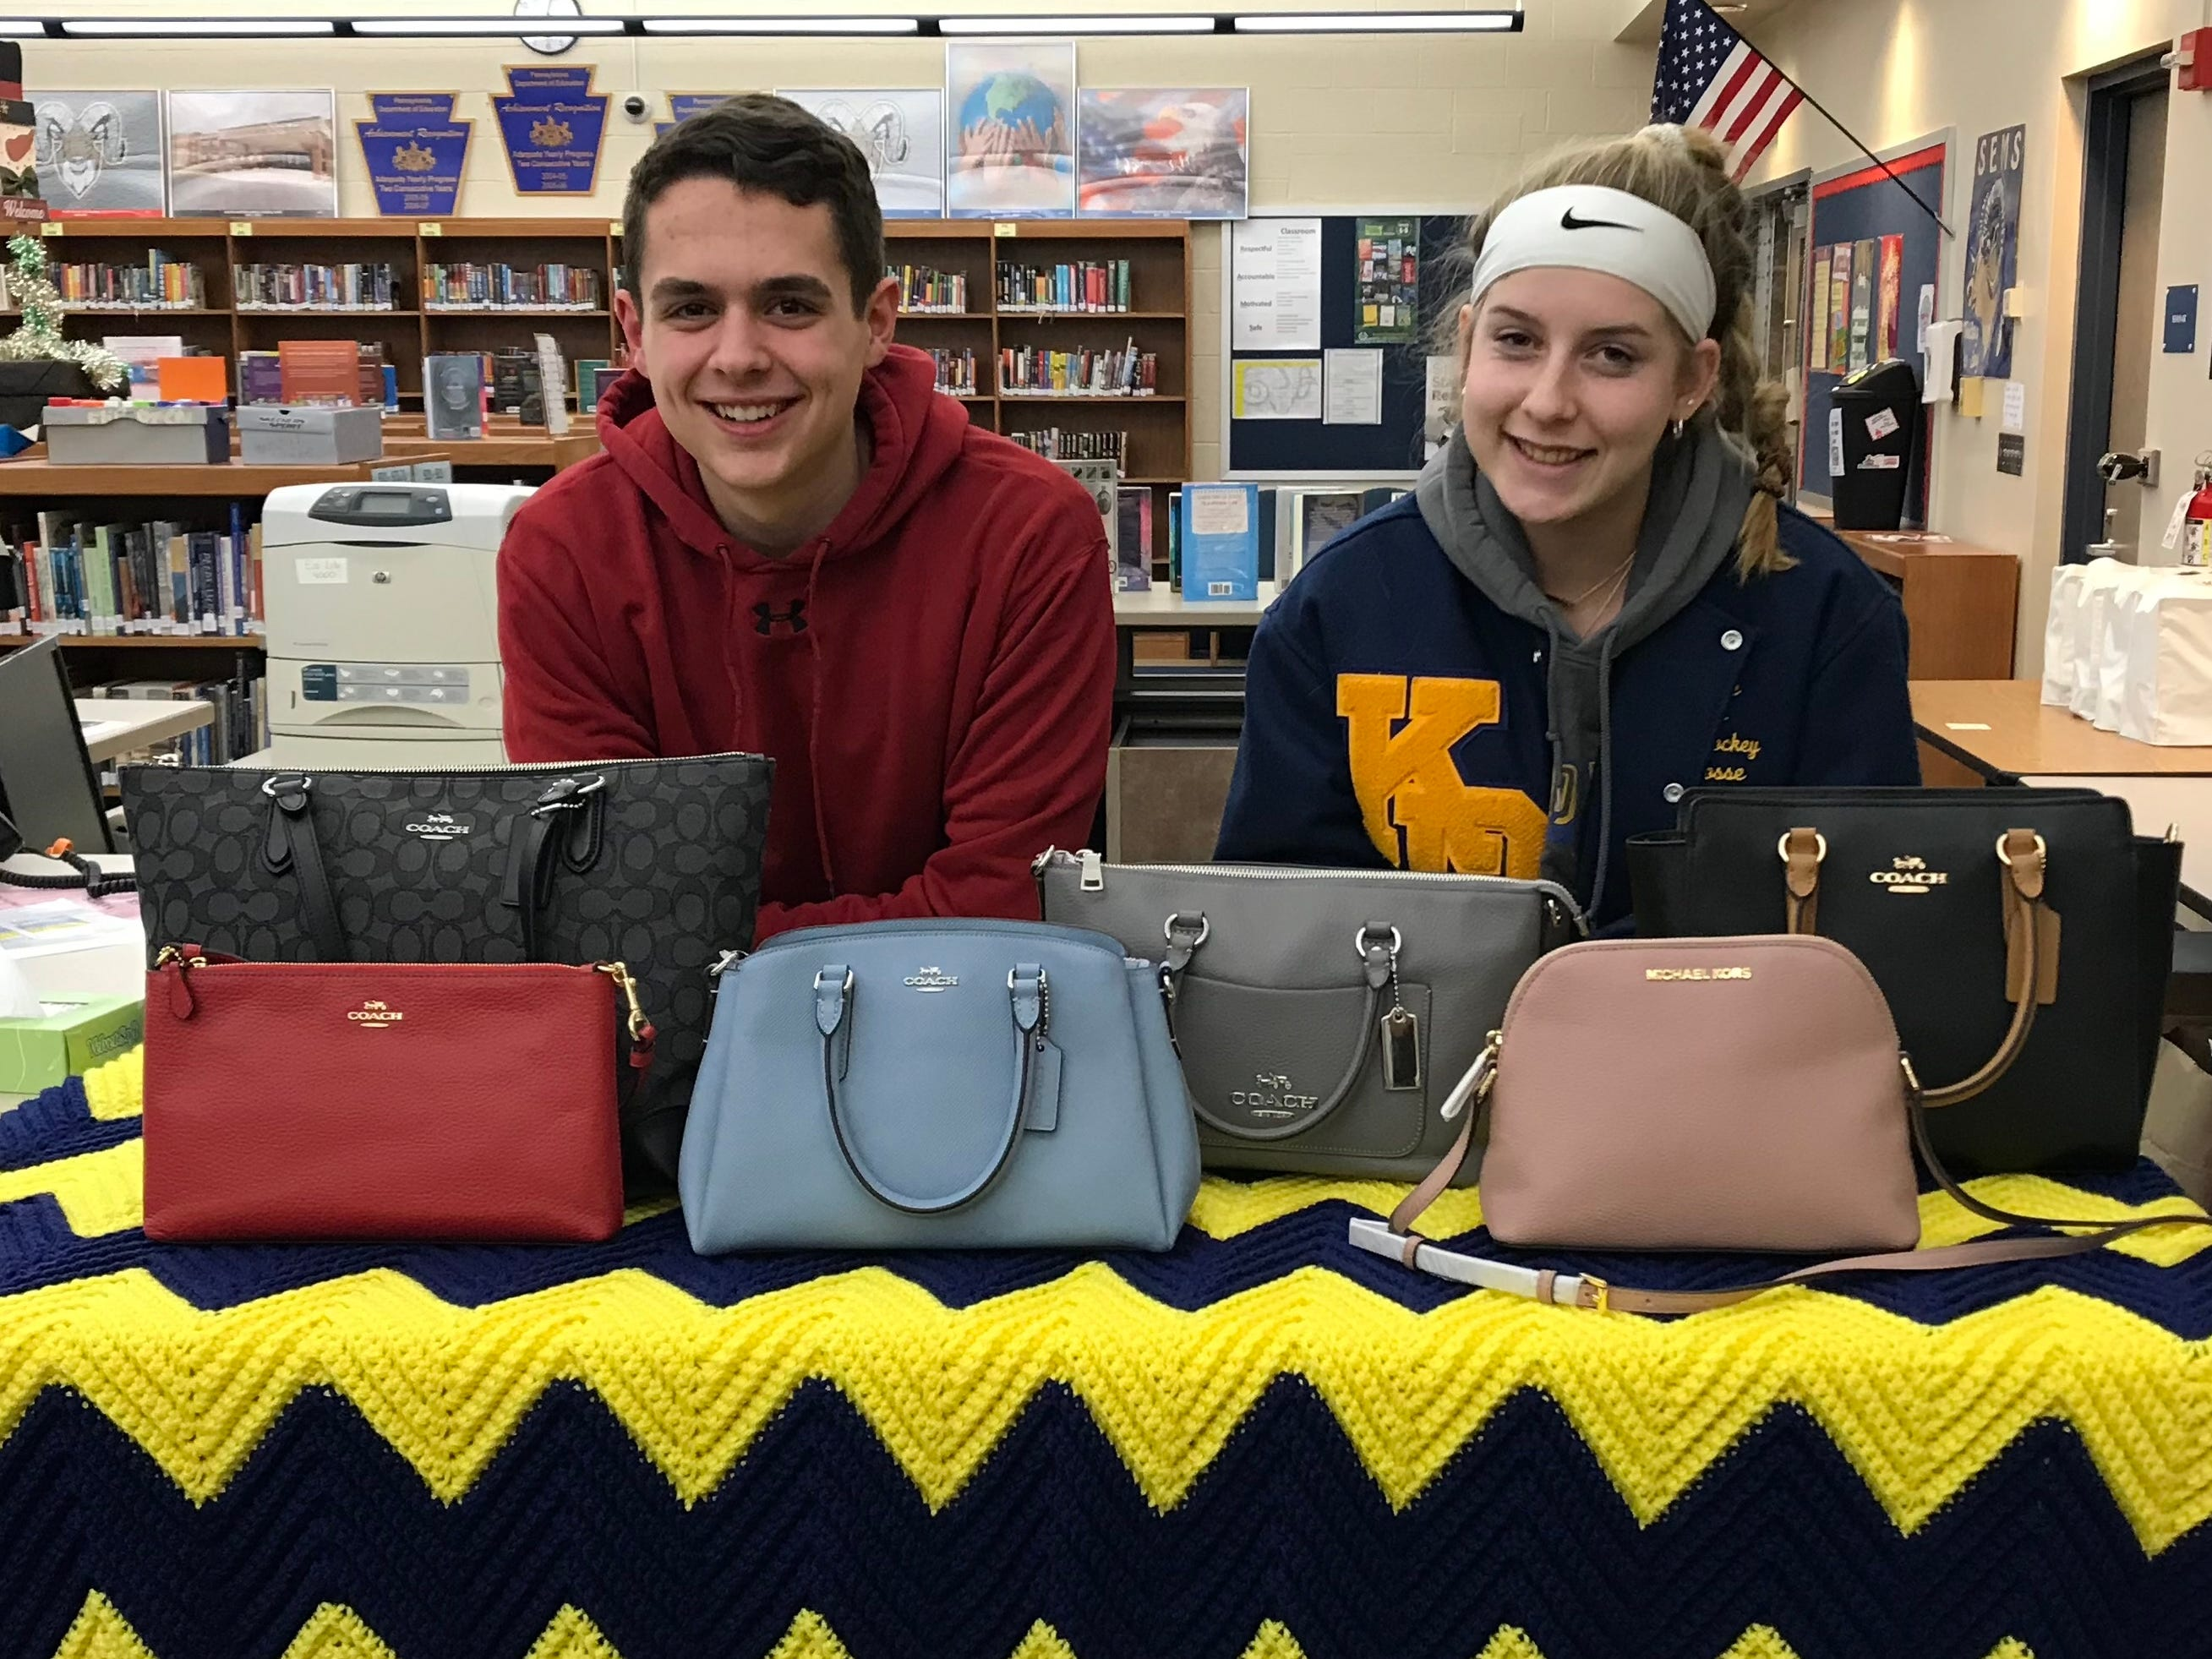 South Eastern Dollars for Scholars student reps Garrett Kilgore and Caroline Lowe pose with some of the items that can be won during theDesigner Bags and Basket Bingo benefitting South Eastern Dollars for Scholars Friday, March 22, in the Kennard-Dale High School cafeteria. The doors will open at 5:30 p.m. for food, including fried chicken dinners (until sold out), soups, sandwiches, pies, cakes, and more. Bingo will begin at 7 p.m. The evening will include 20 regular games of bingo and each winner will receive both a designer purse and a filled Longaberger basket. There will be many door prizes given away that have been donated by the community. submitted